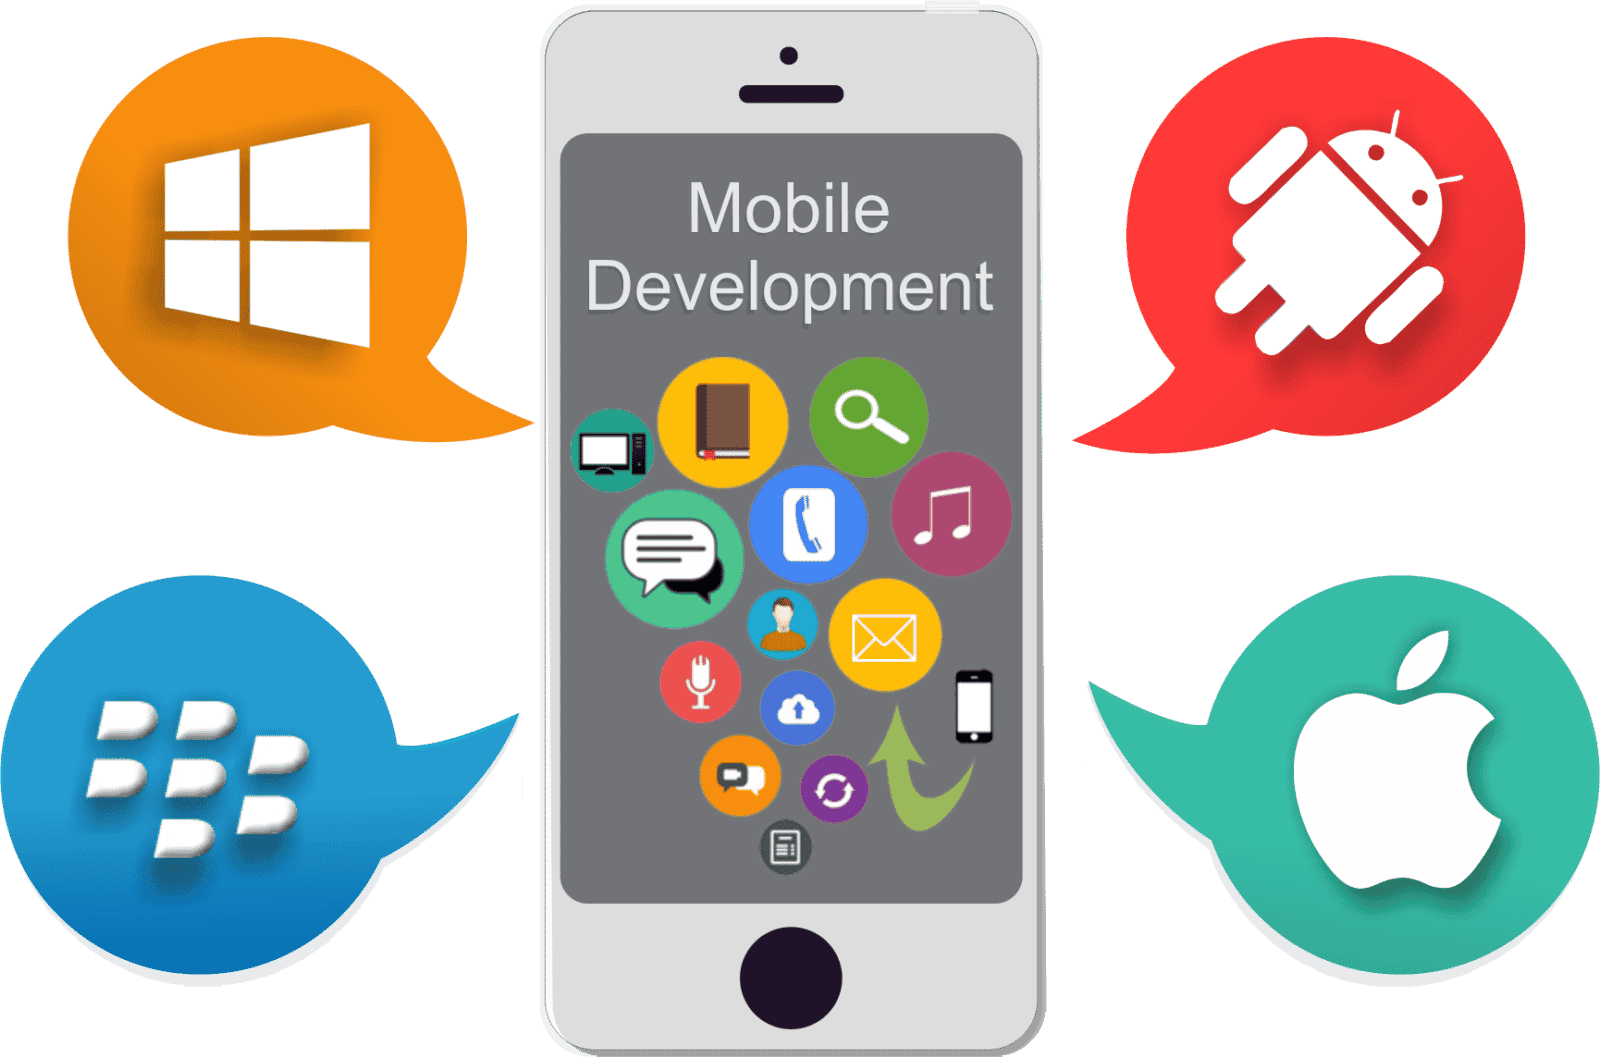 Mobile-Application-Development-seo